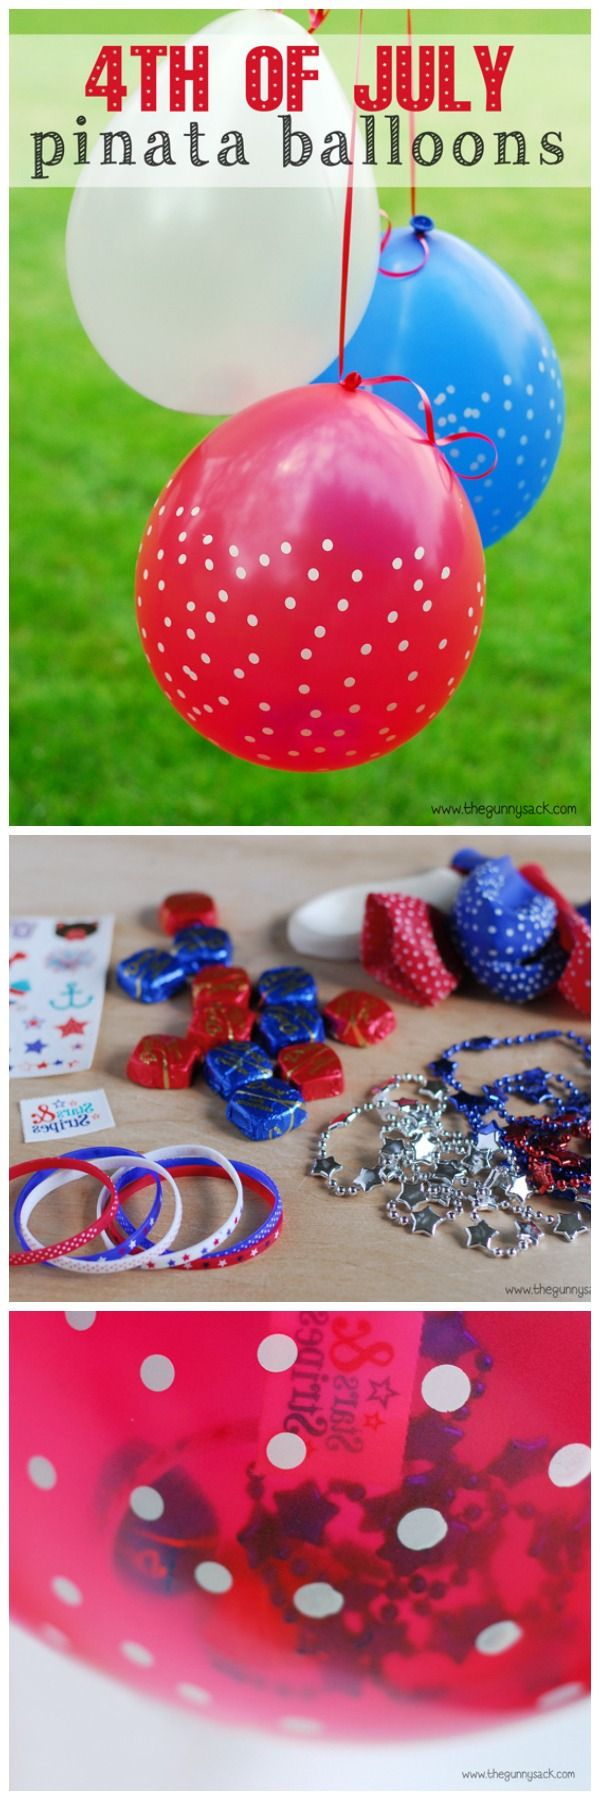 4th of July Pinata Balloons are filled with fun treats for Independence Day!